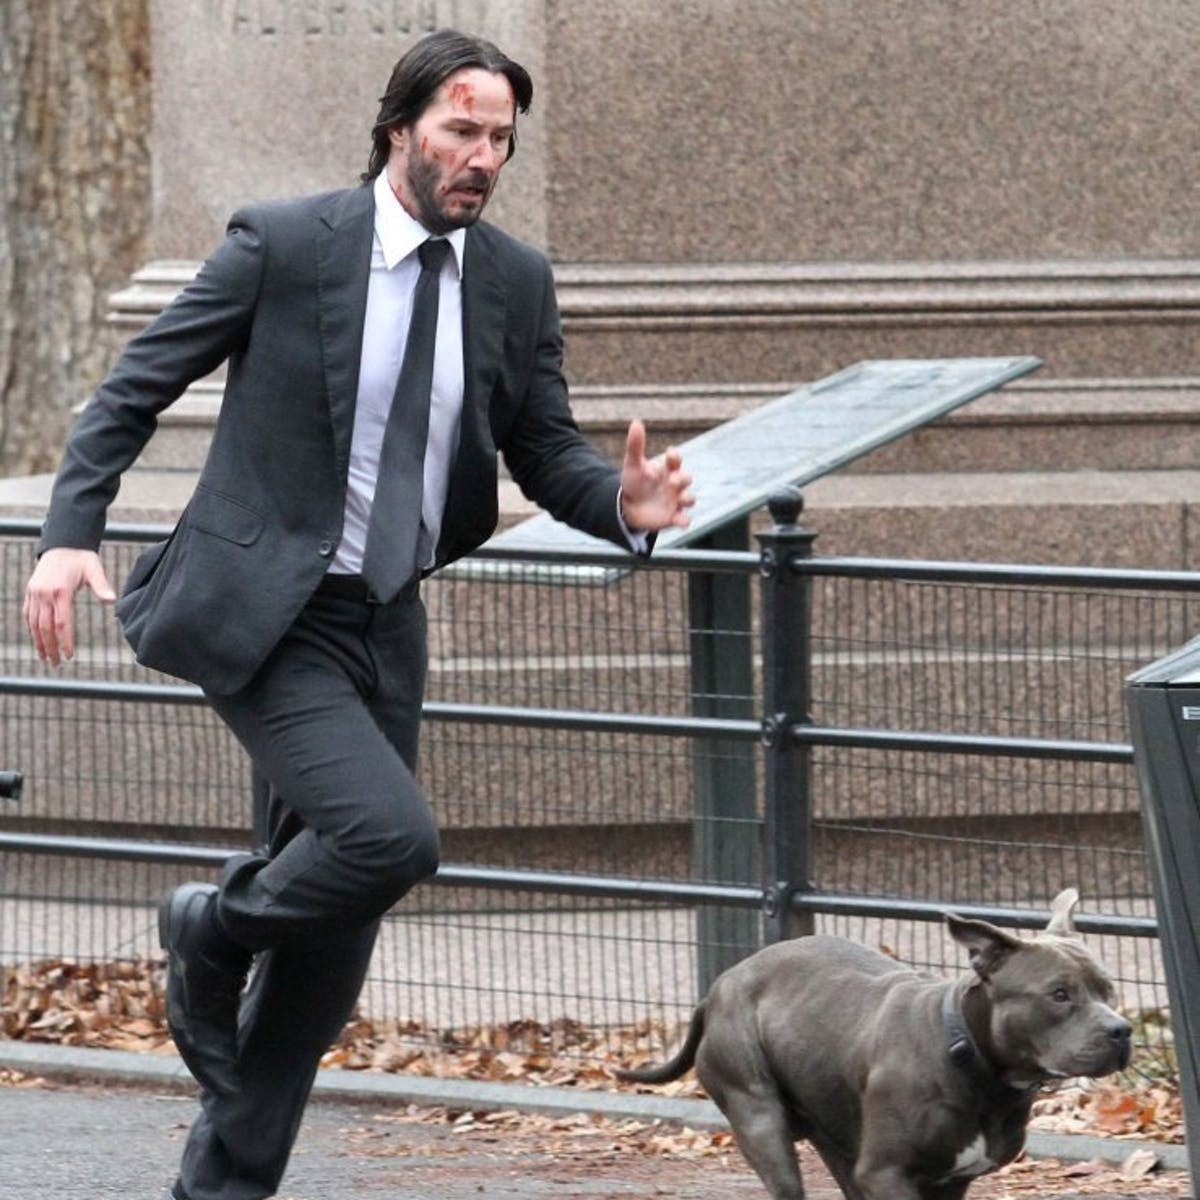 Keanu Reeves Runs With Hero Dog in These New 'John Wick 2' Set